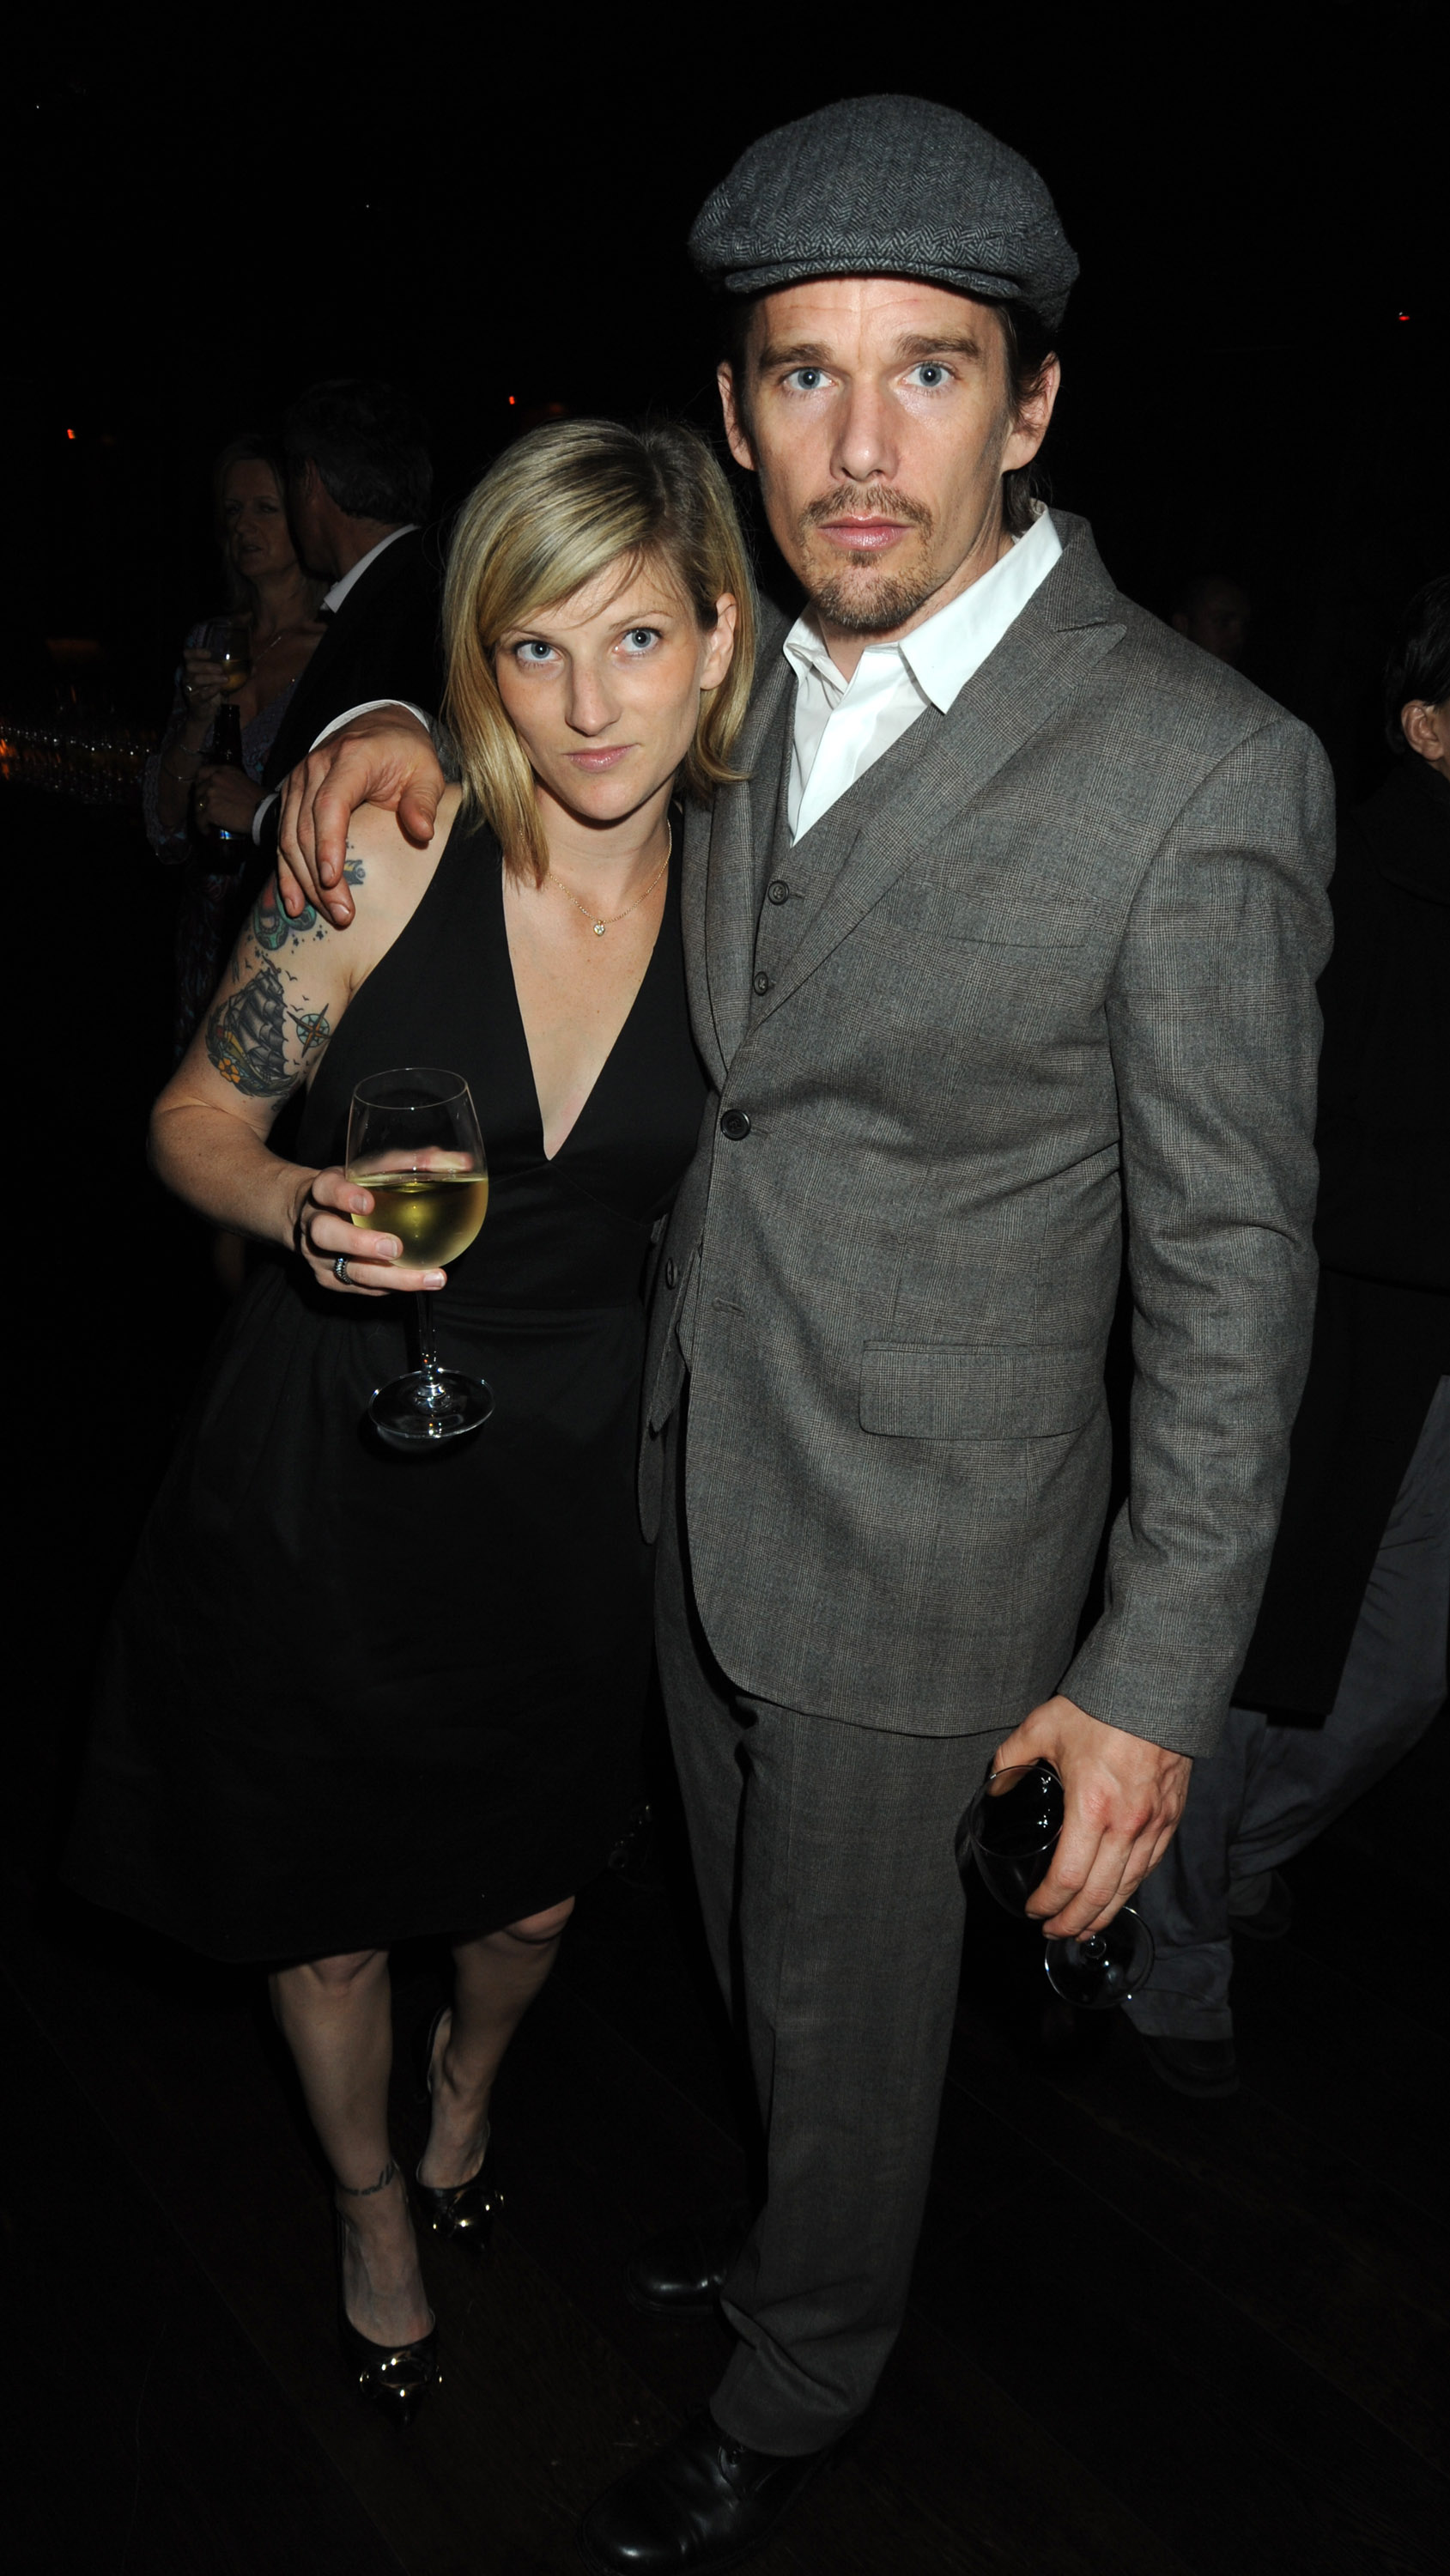 Ethan Hawke and Ryan Shawhughes attend the afterparty following the press night of 'The Cherry Orchard' at The Buddha Bar on June 9, 2009 in London, England.